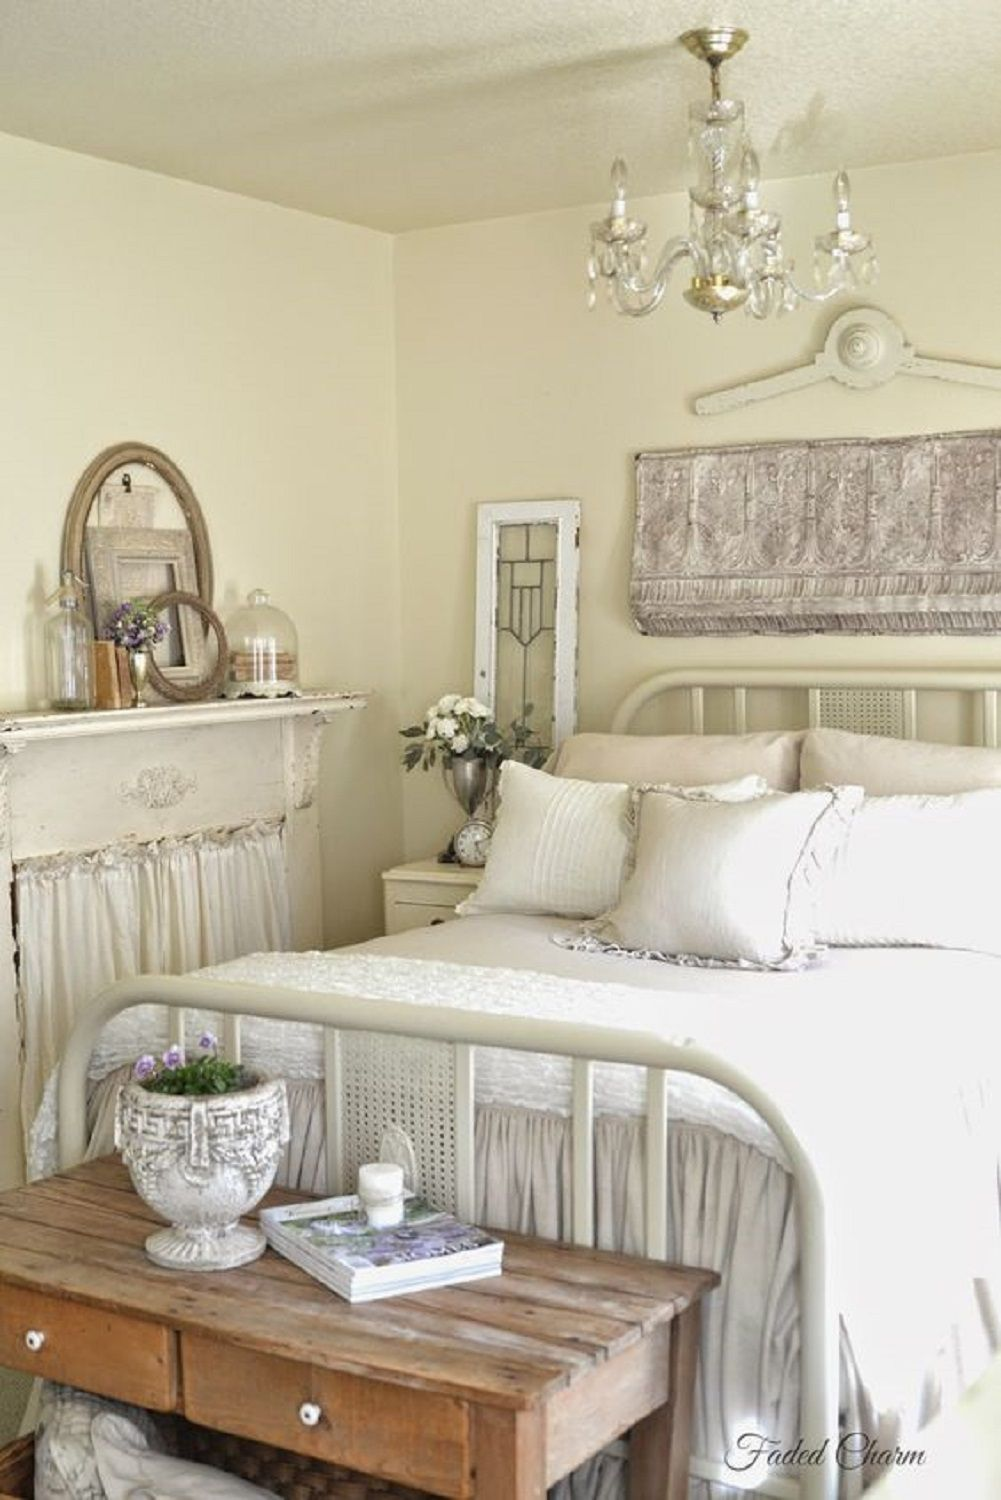 Farmhouse White Headboard